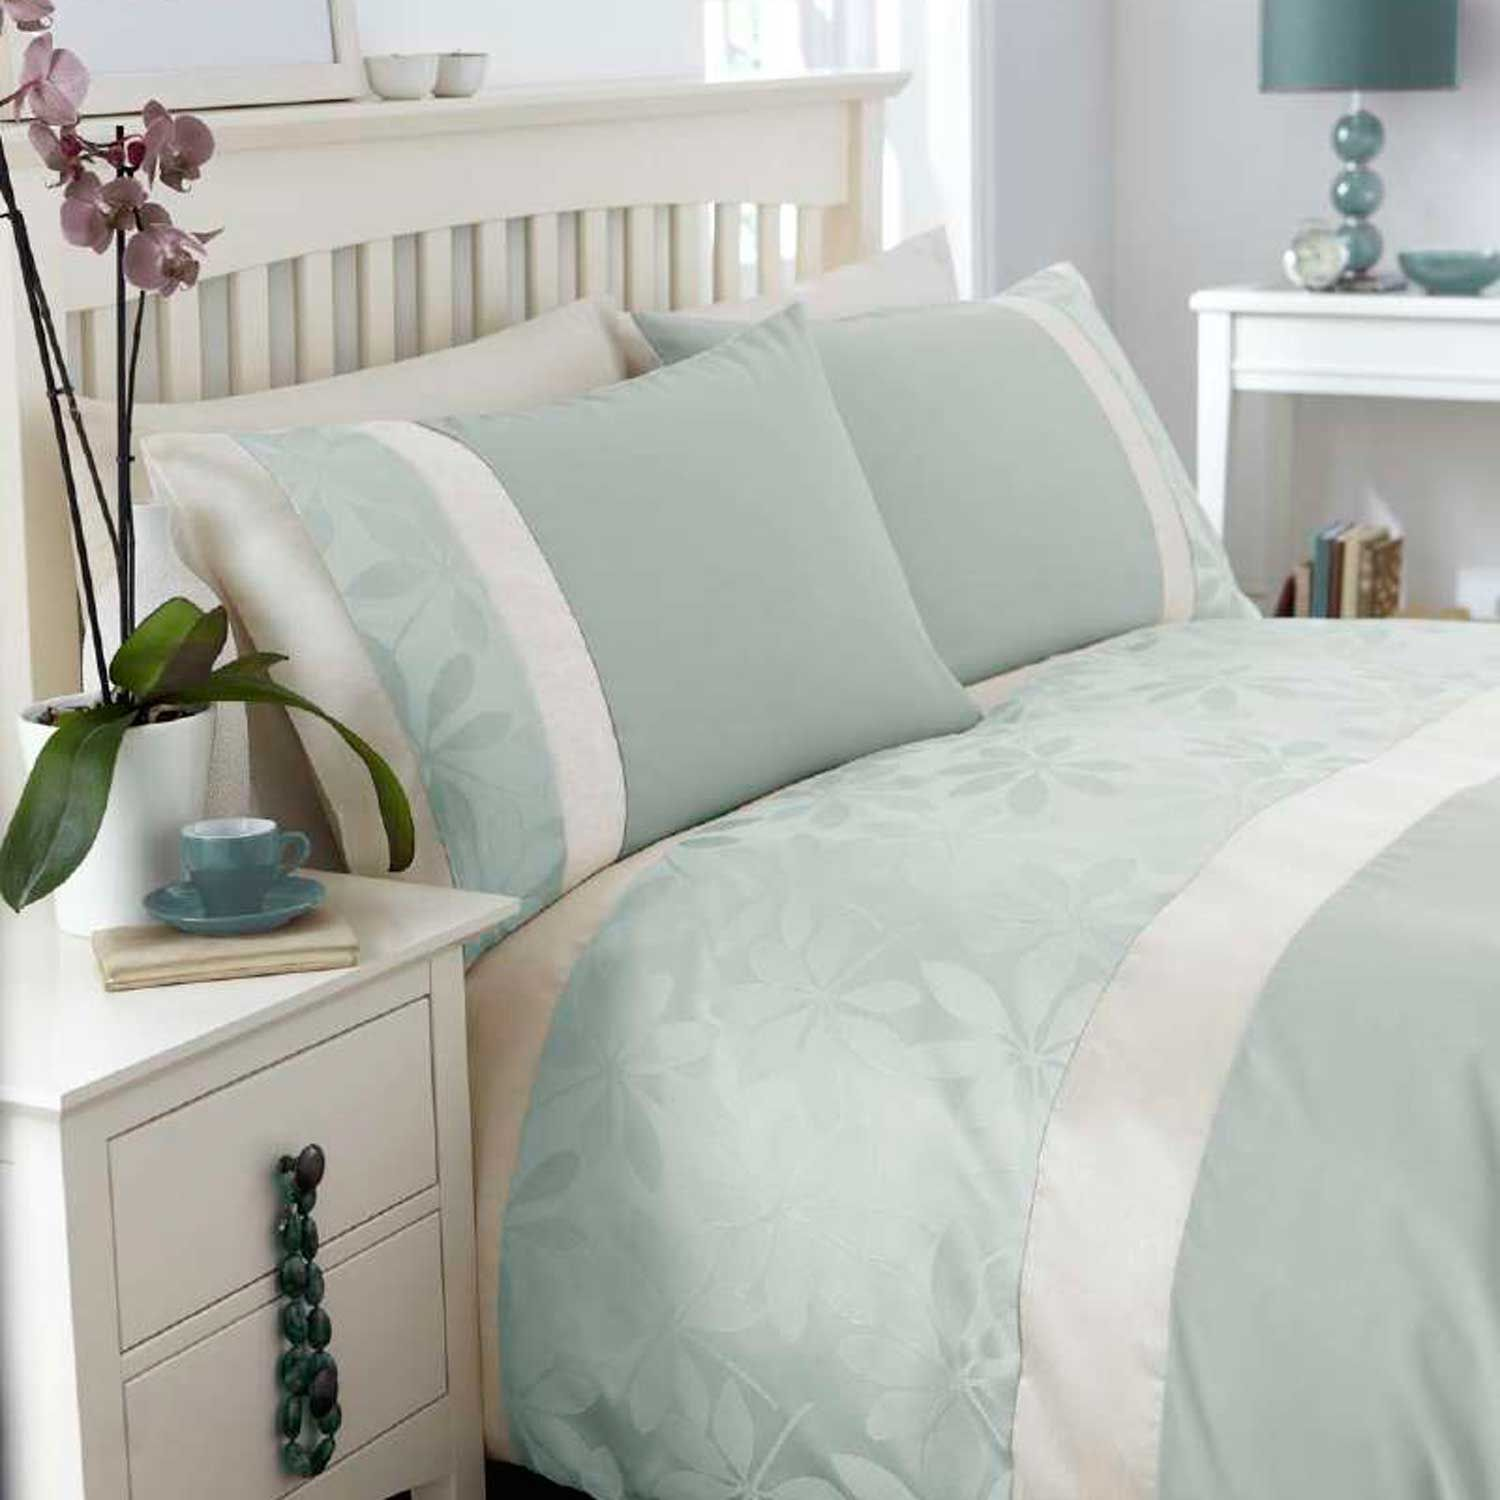 From Midnight To Duck Egg See: Jacquard Duck Egg Duvet Cover